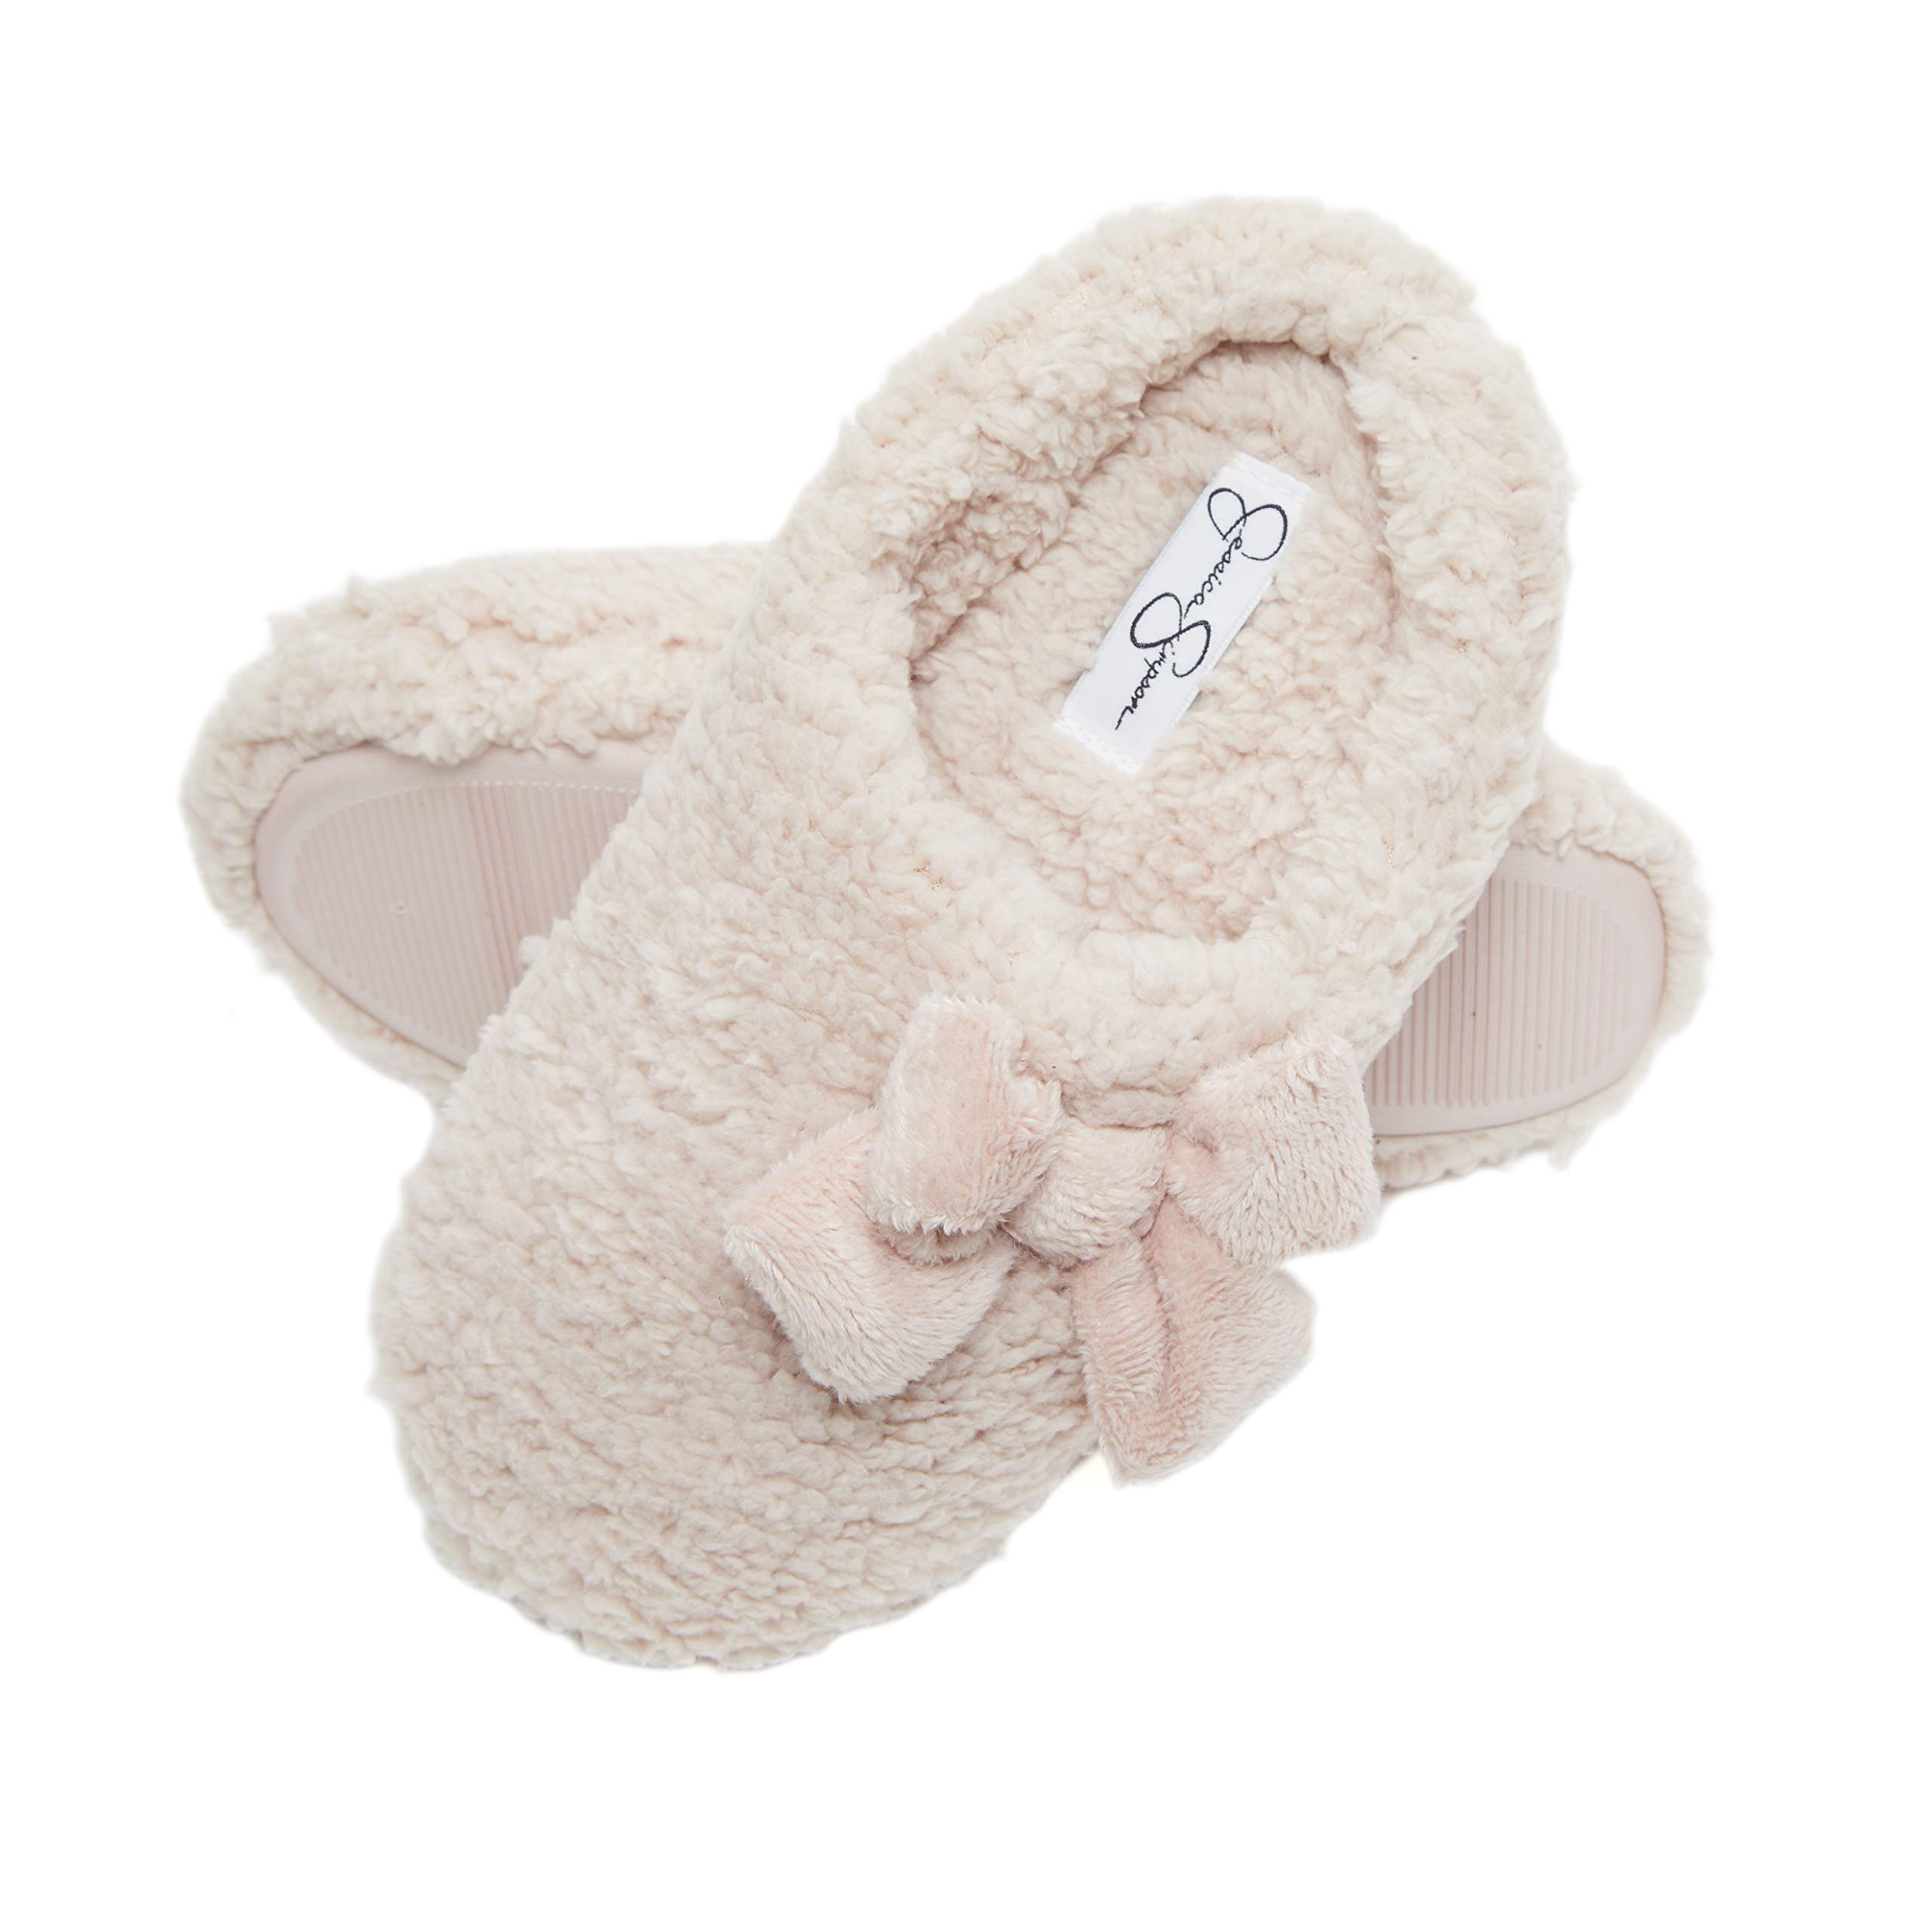 Jessica Simpson Womens Plush Marshmallow Slide On House Slipper Clog with Memory Foam (Size Medium, Pink) by Jessica Simpson